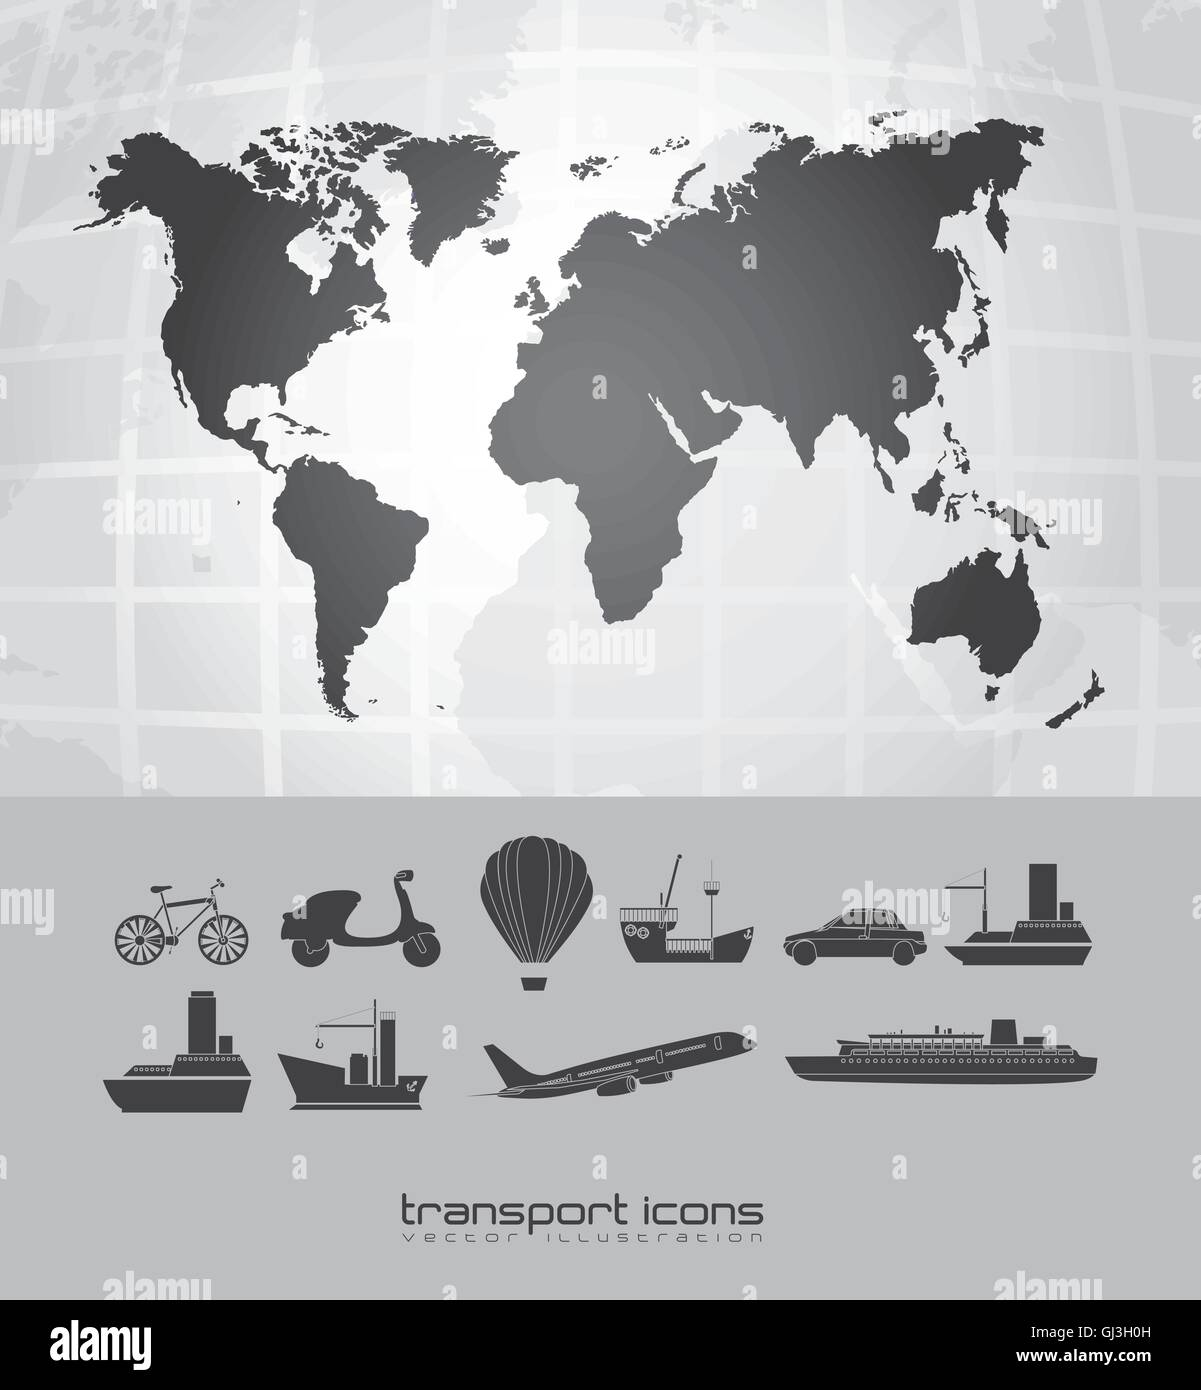 Illustration of transportation icons with world map vector illus illustration of transportation icons with world map vector illus gumiabroncs Images